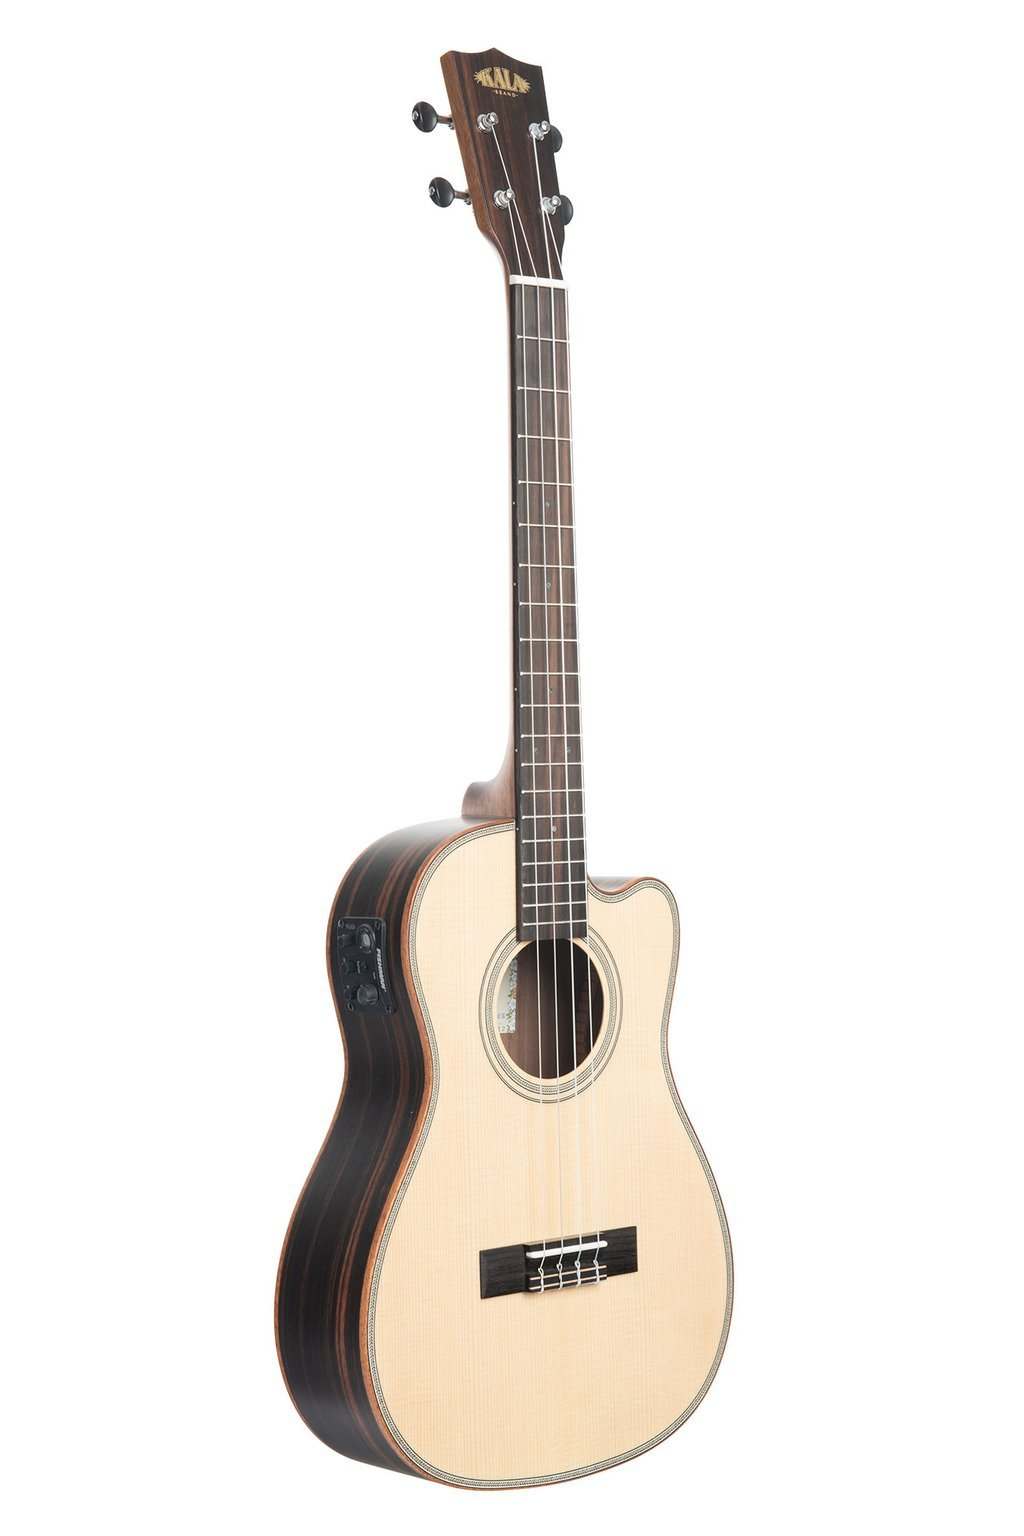 Kala Solid Spruce Top Striped Ebony Baritone Cutaway Ukulele w/EQ